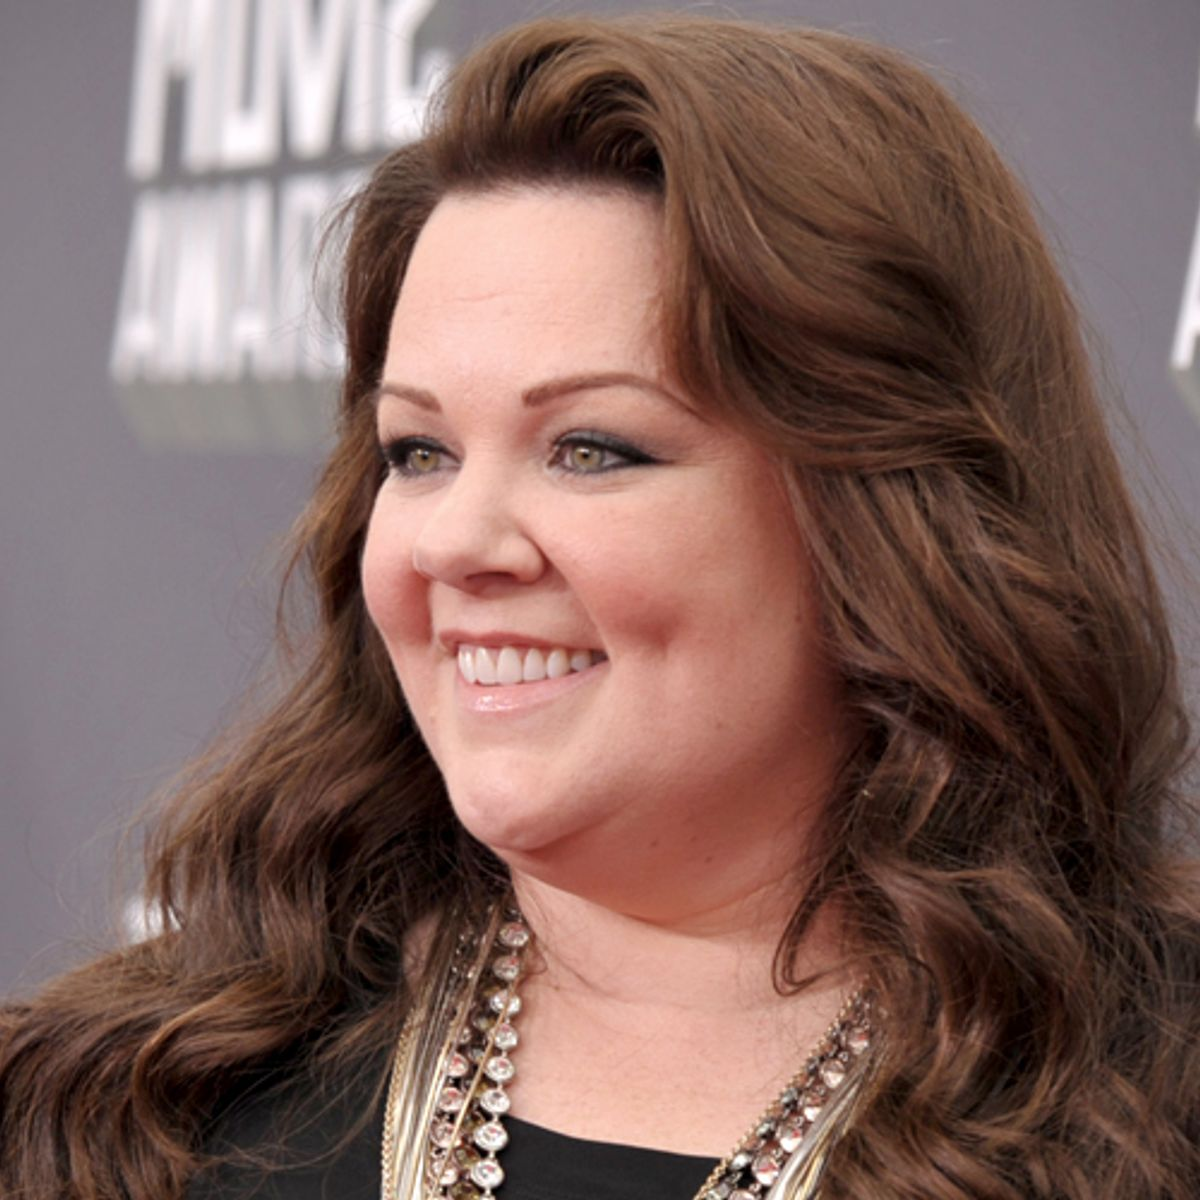 How Melissa Mccarthy Sold Out Overweight Women Salon Com